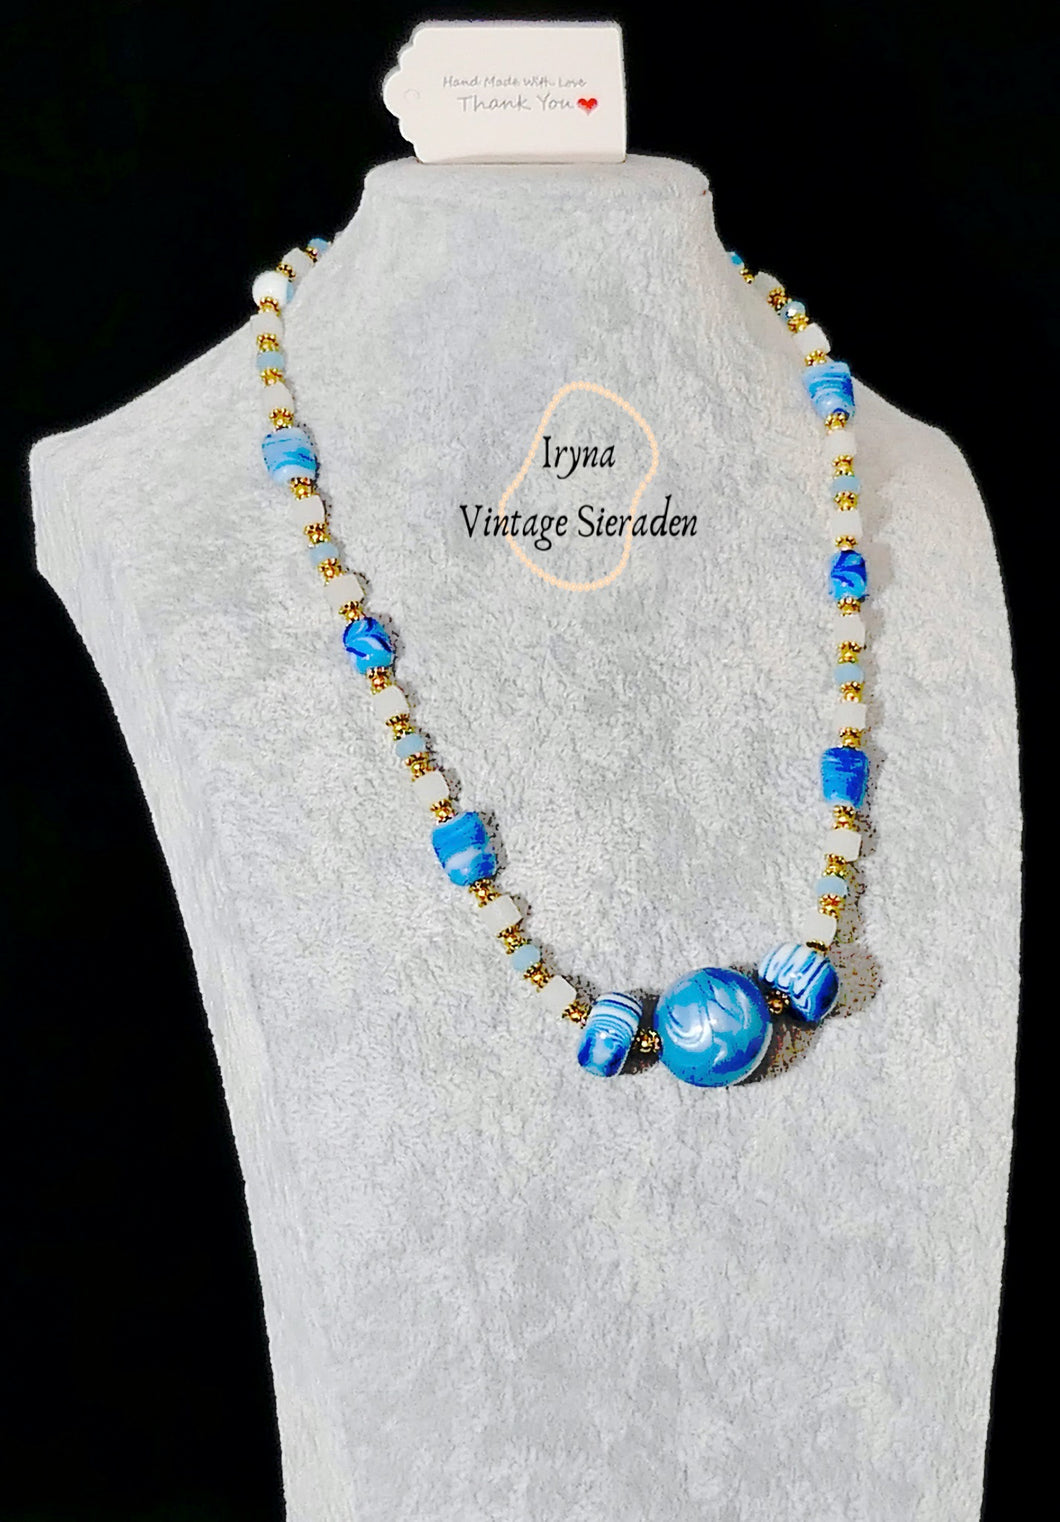 Necklace with Crystal and Lampwork Beads